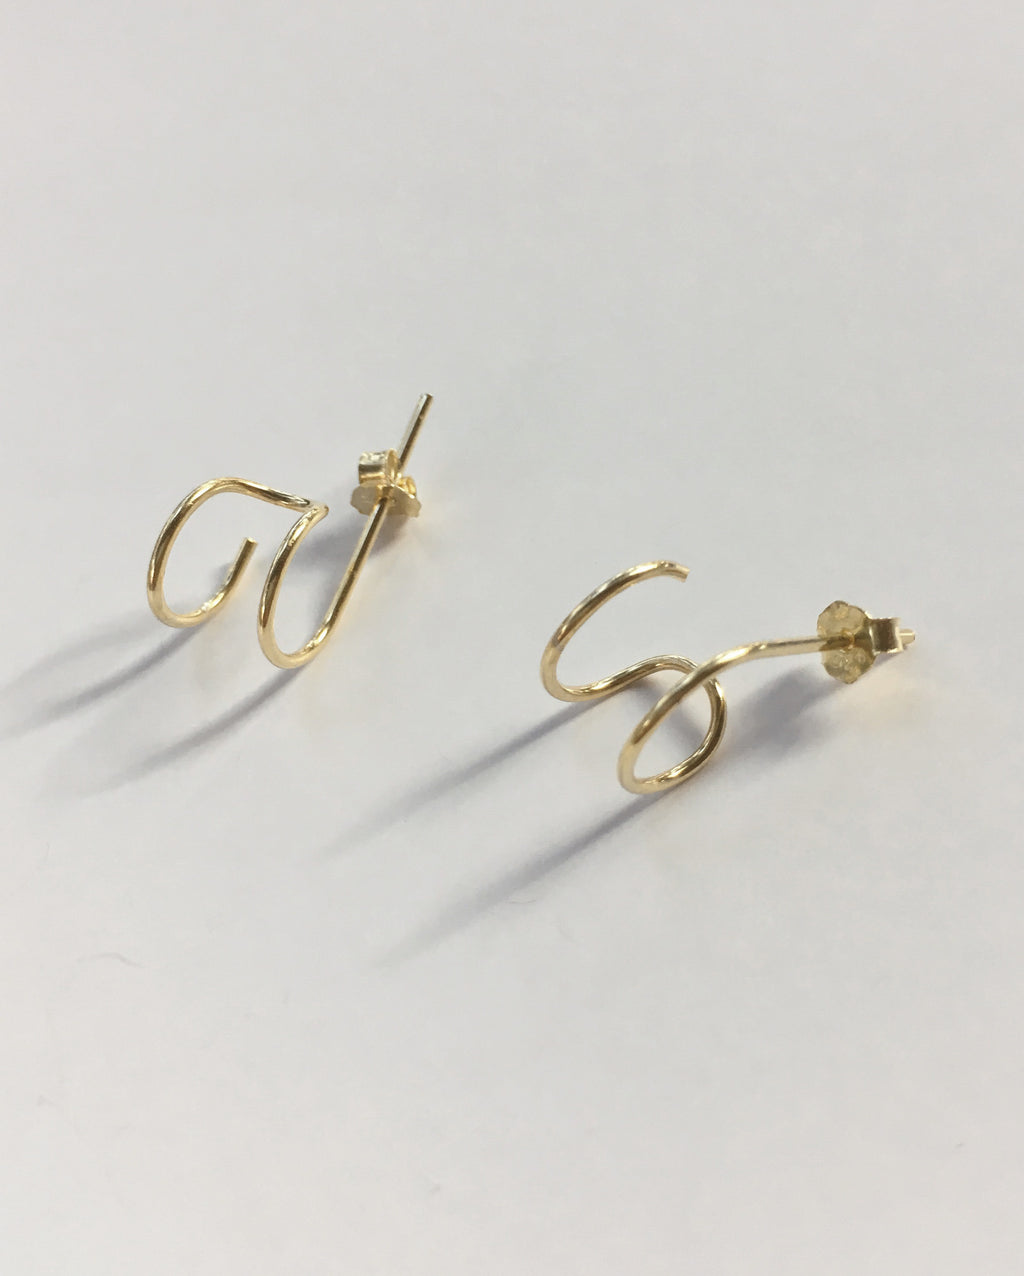 Gold-plated double loop earrings - Filament Huggie Hoops by TheHexad